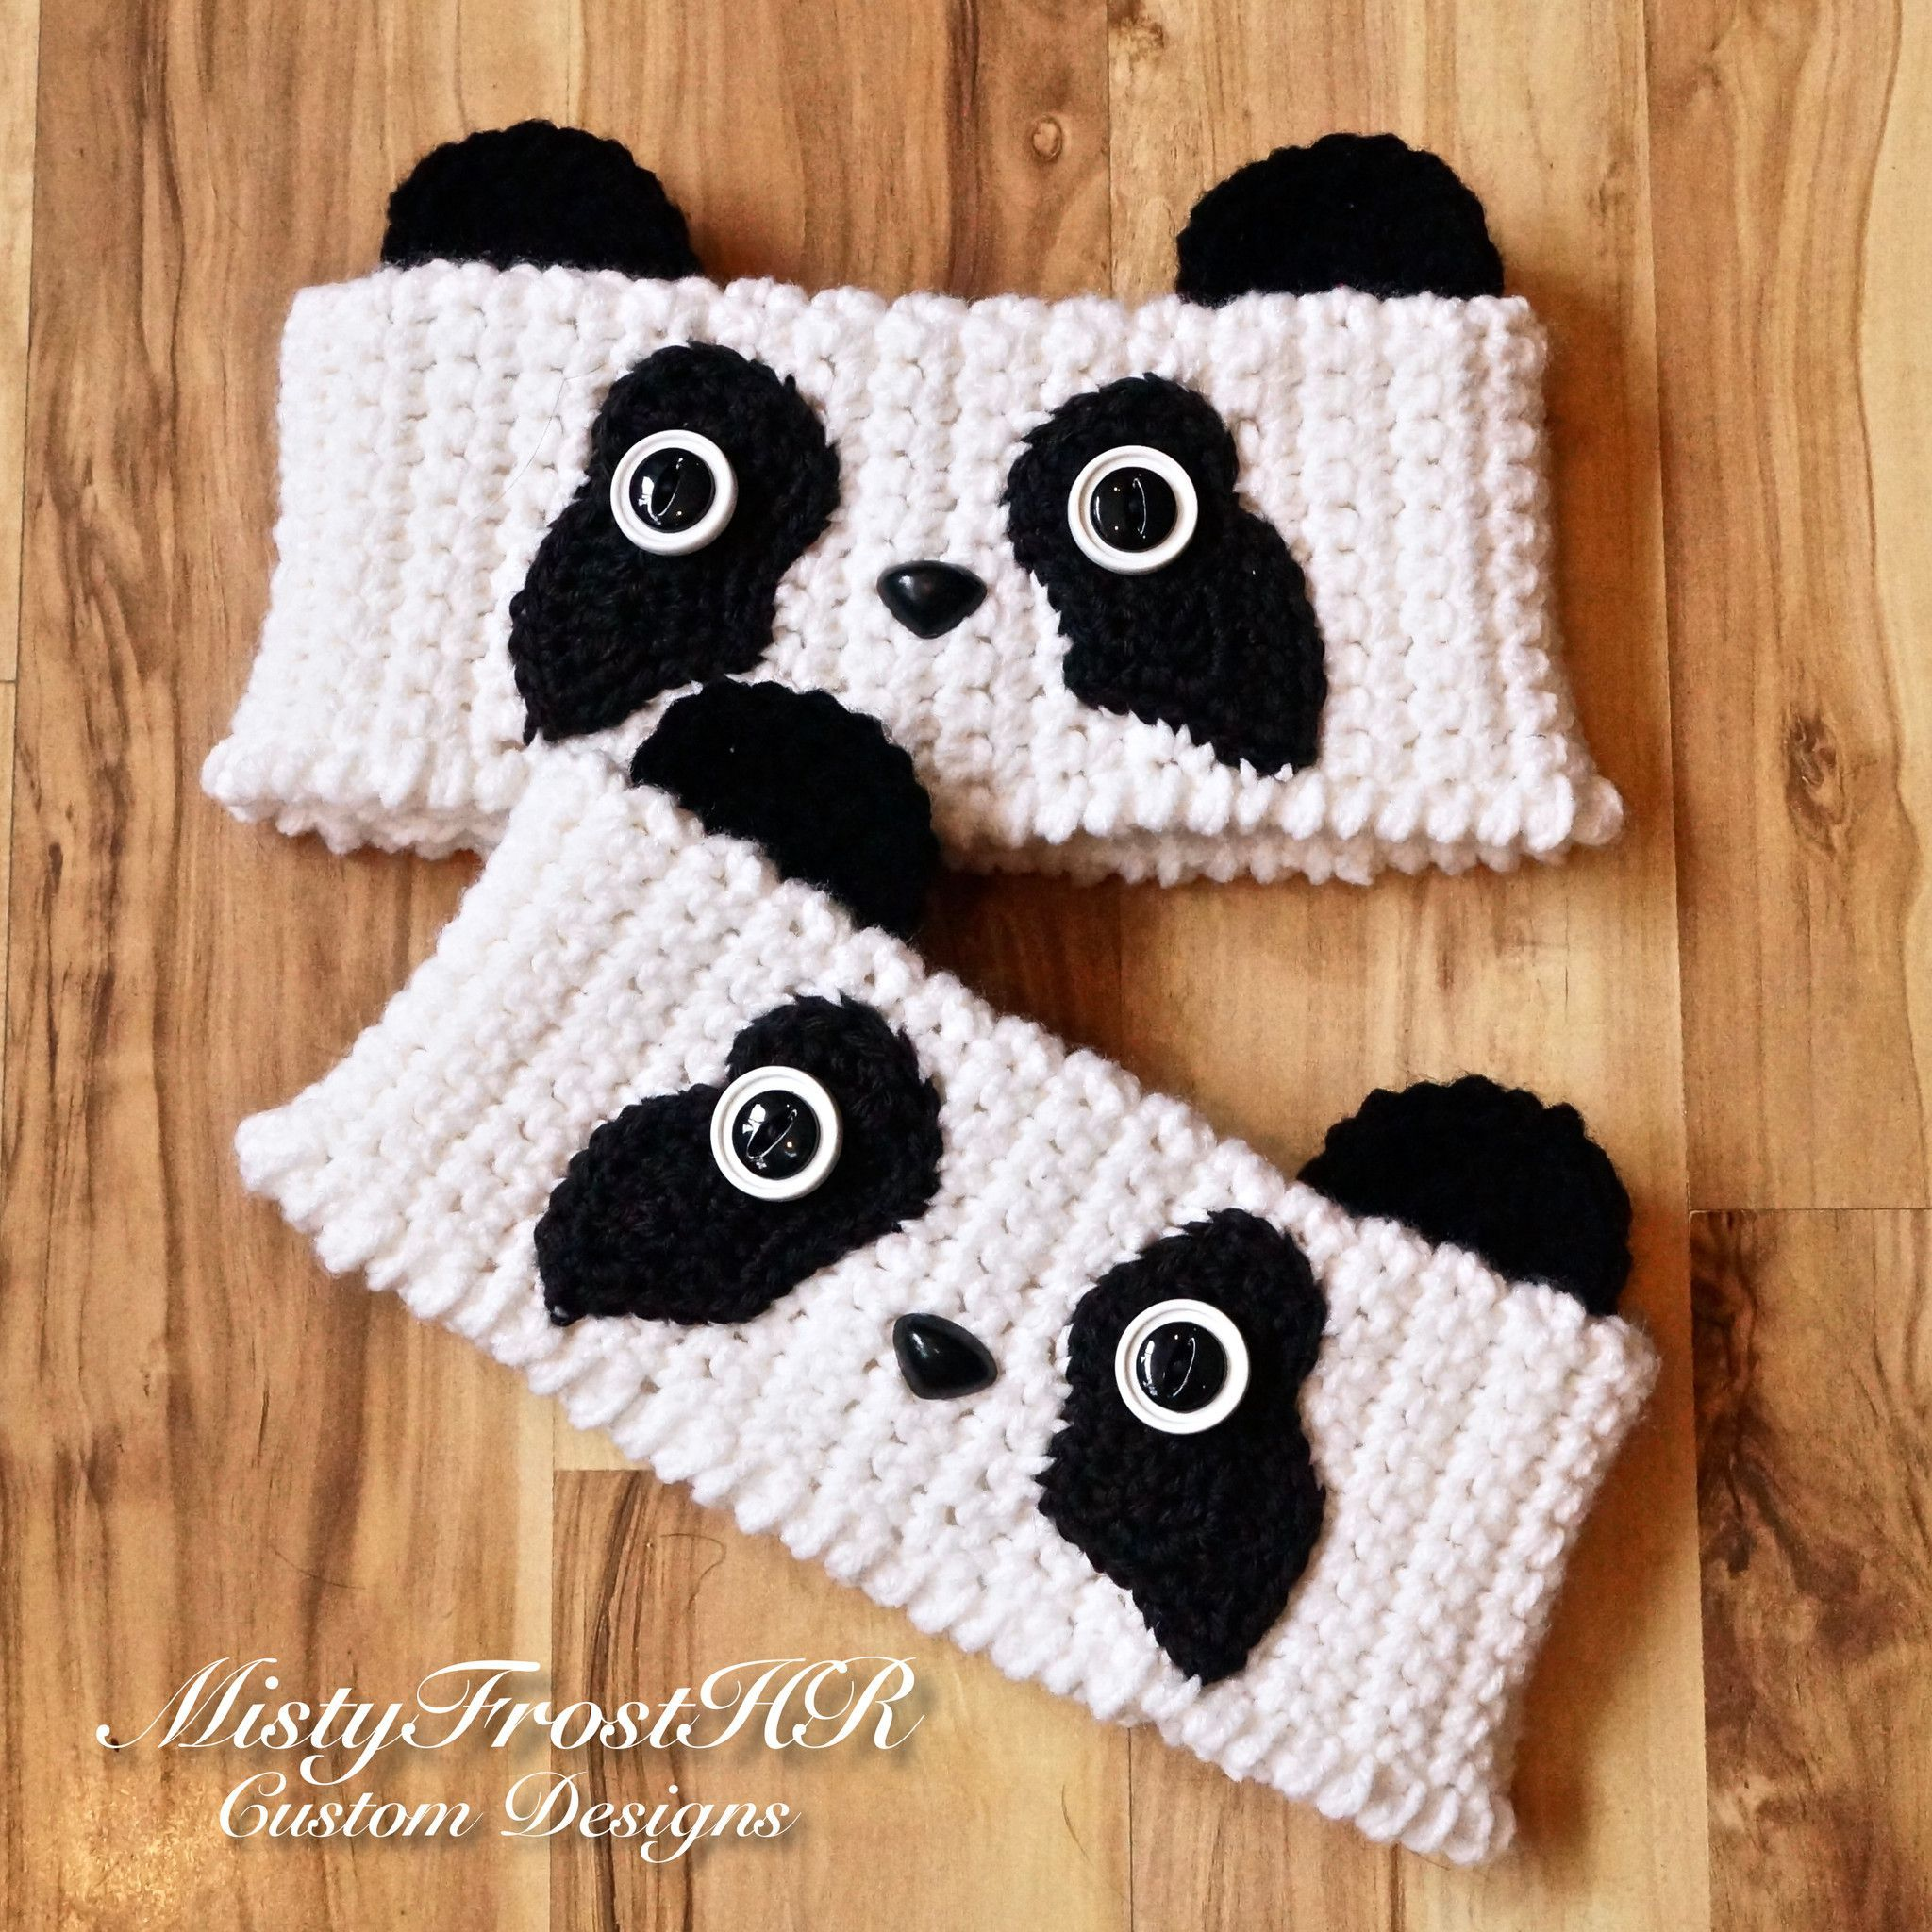 Crochet Perfectly Panda Bear Boot Cuff Toppers | Stiefel, Häkeln und ...